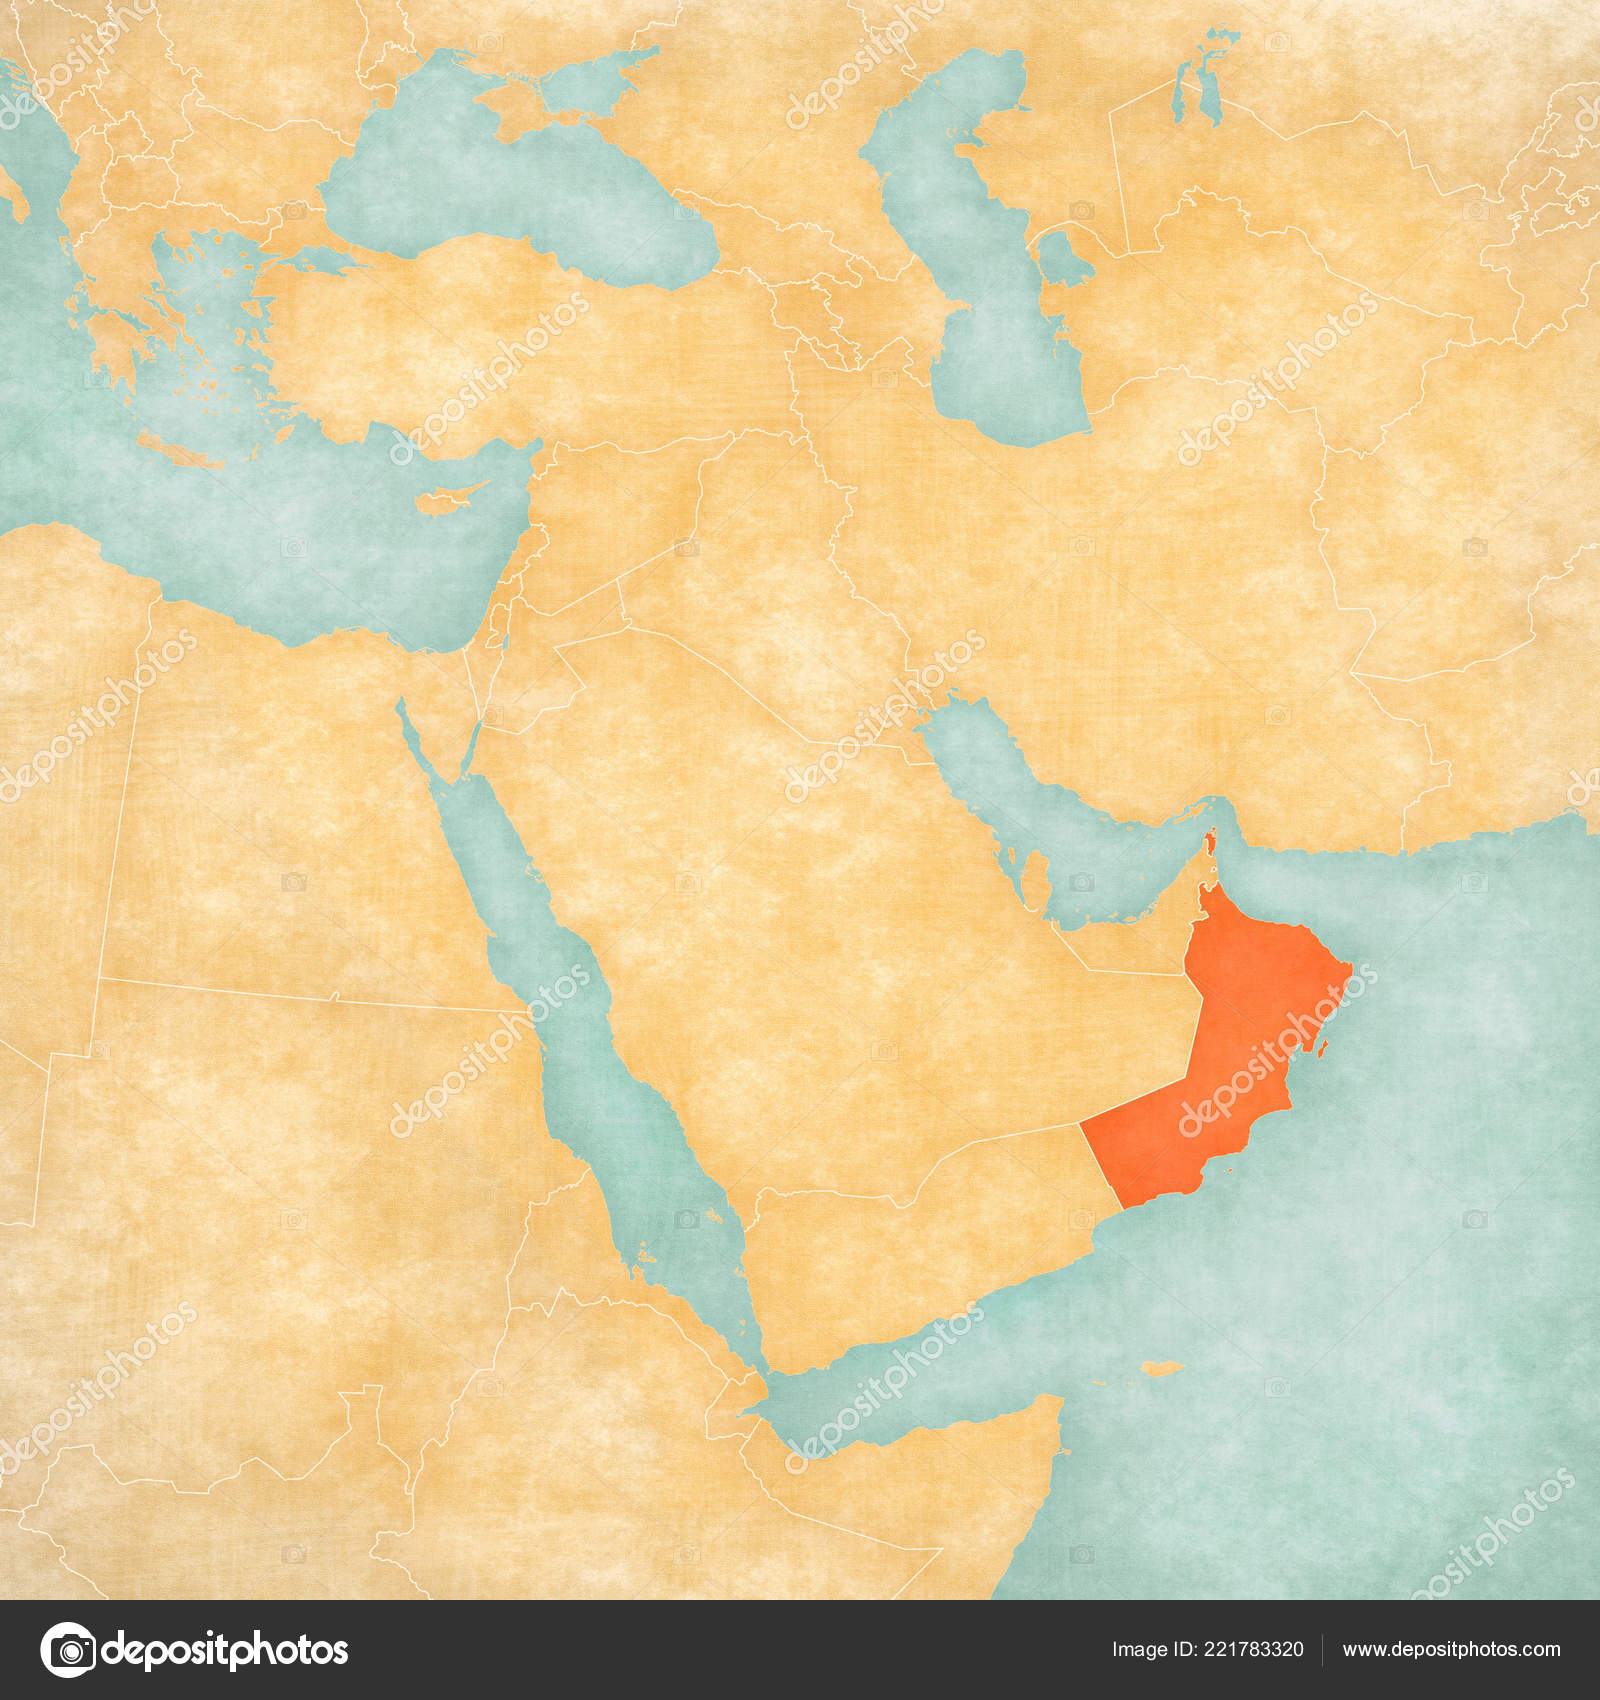 Oman Map Middle East Western Asia Soft Grunge Vintage Style ...